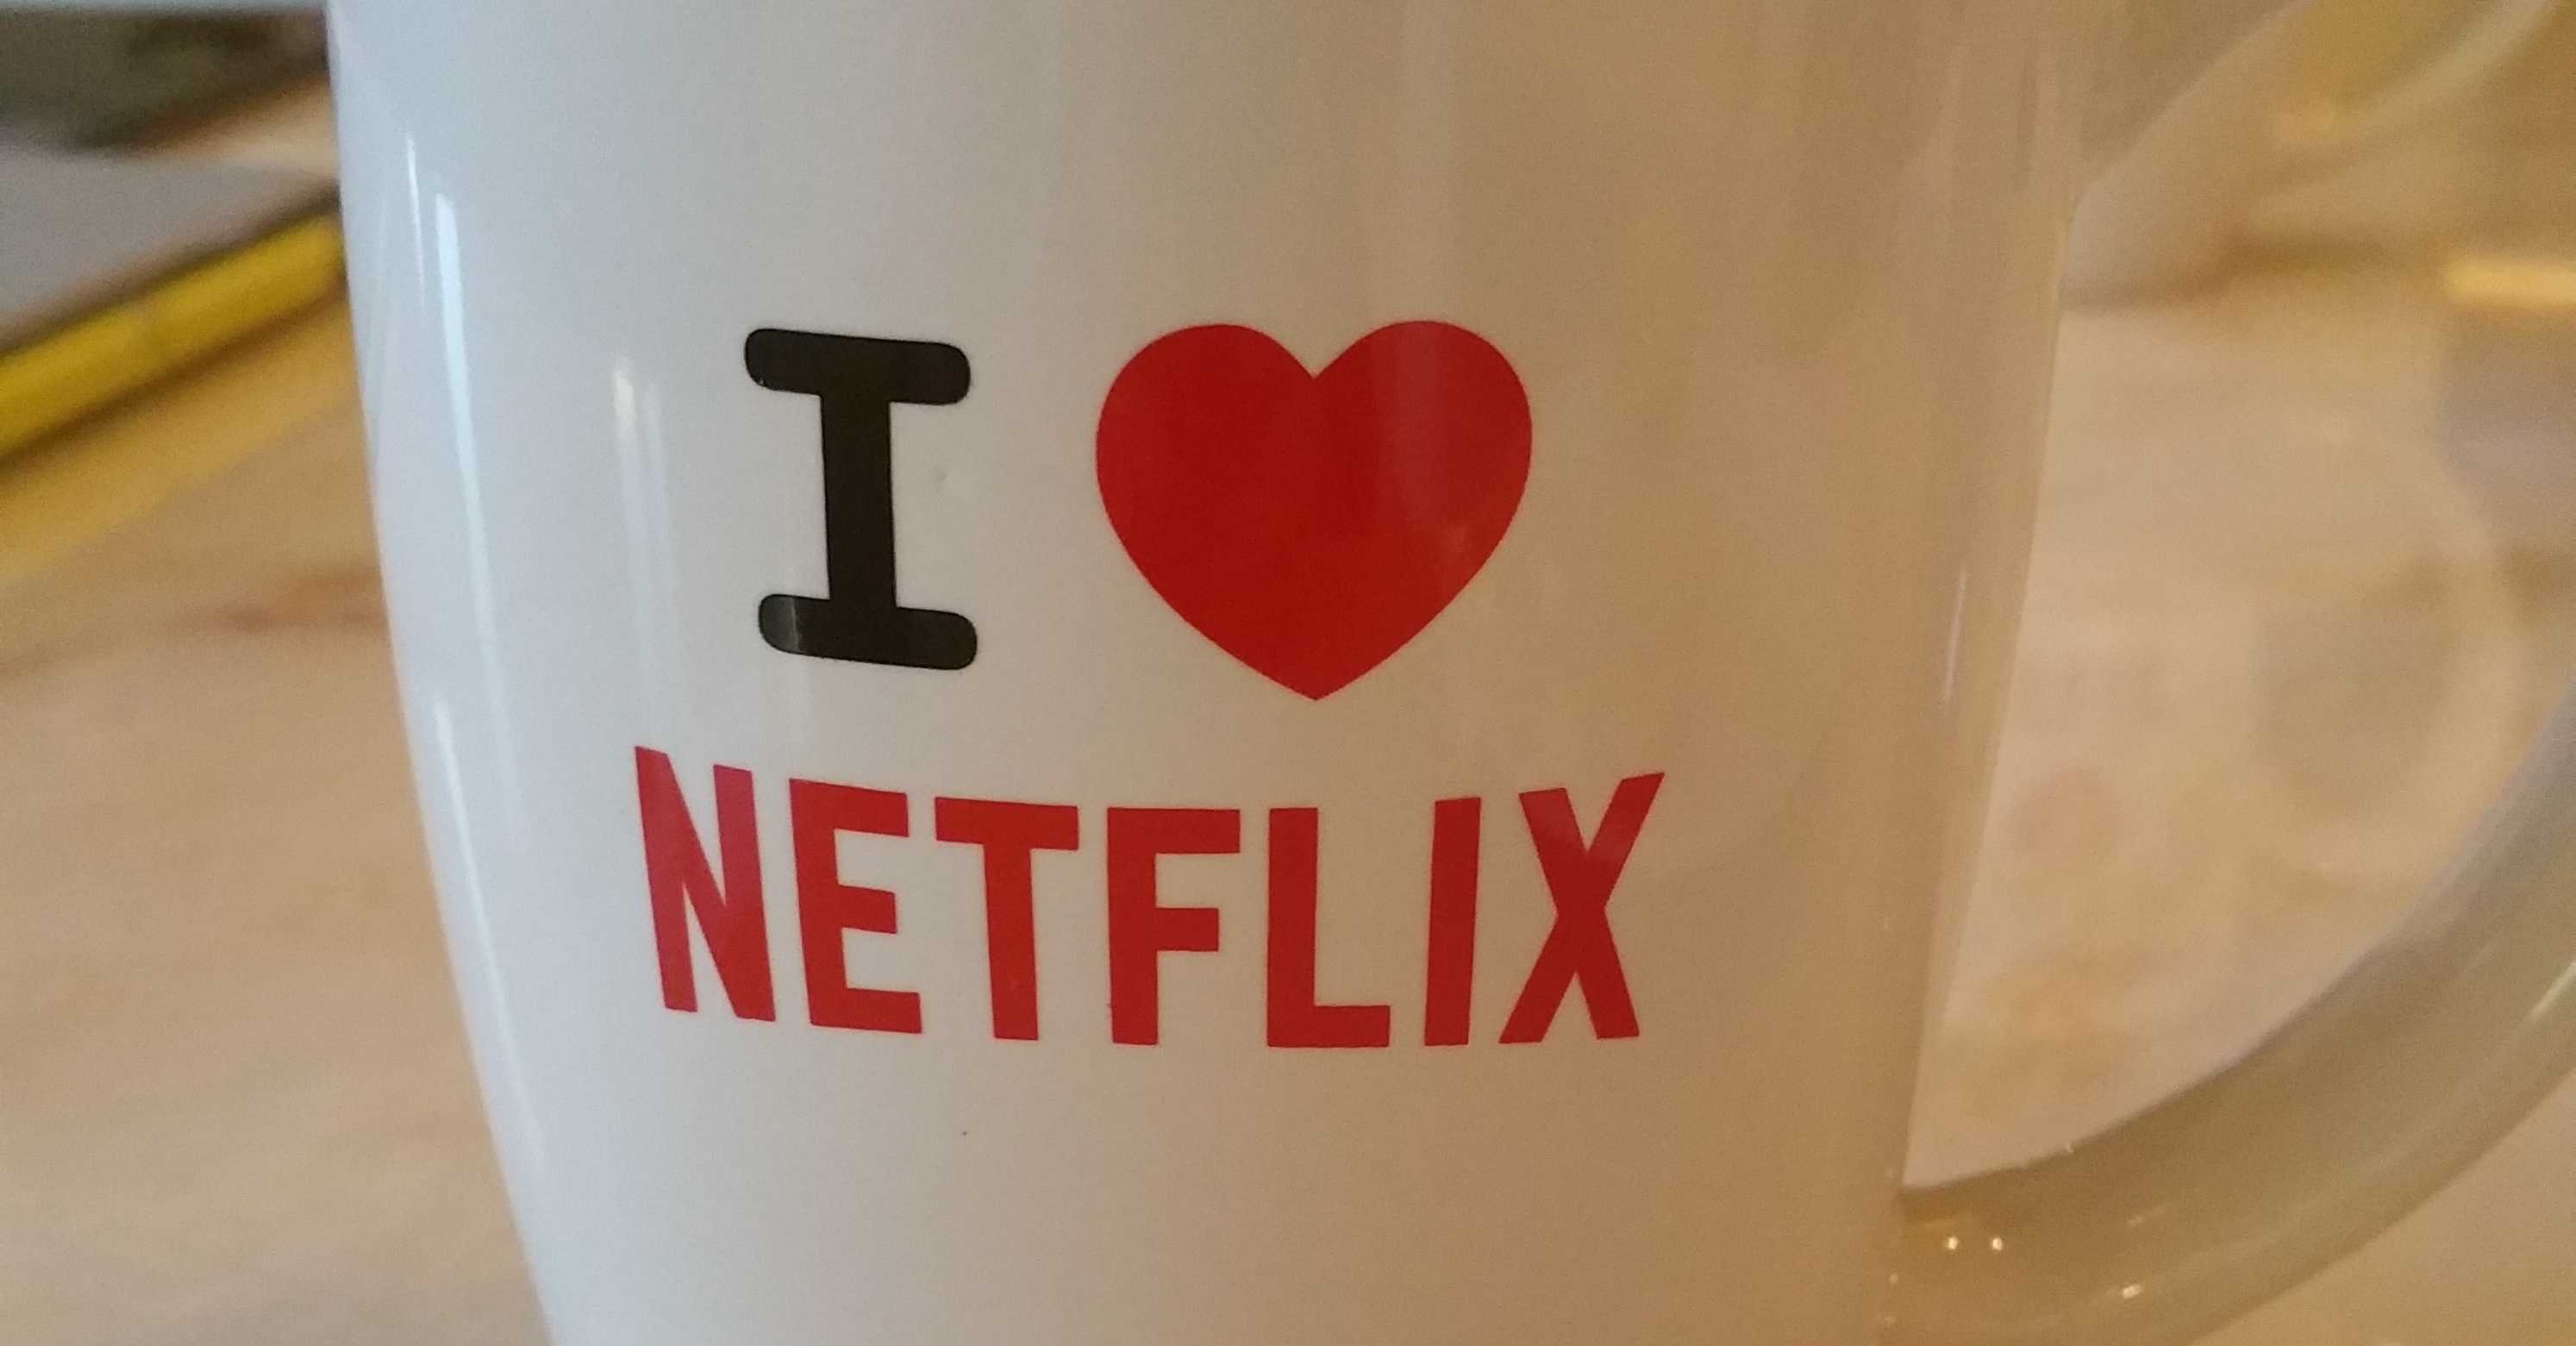 You can finally watch Netflix while doing other stuff on your iPad